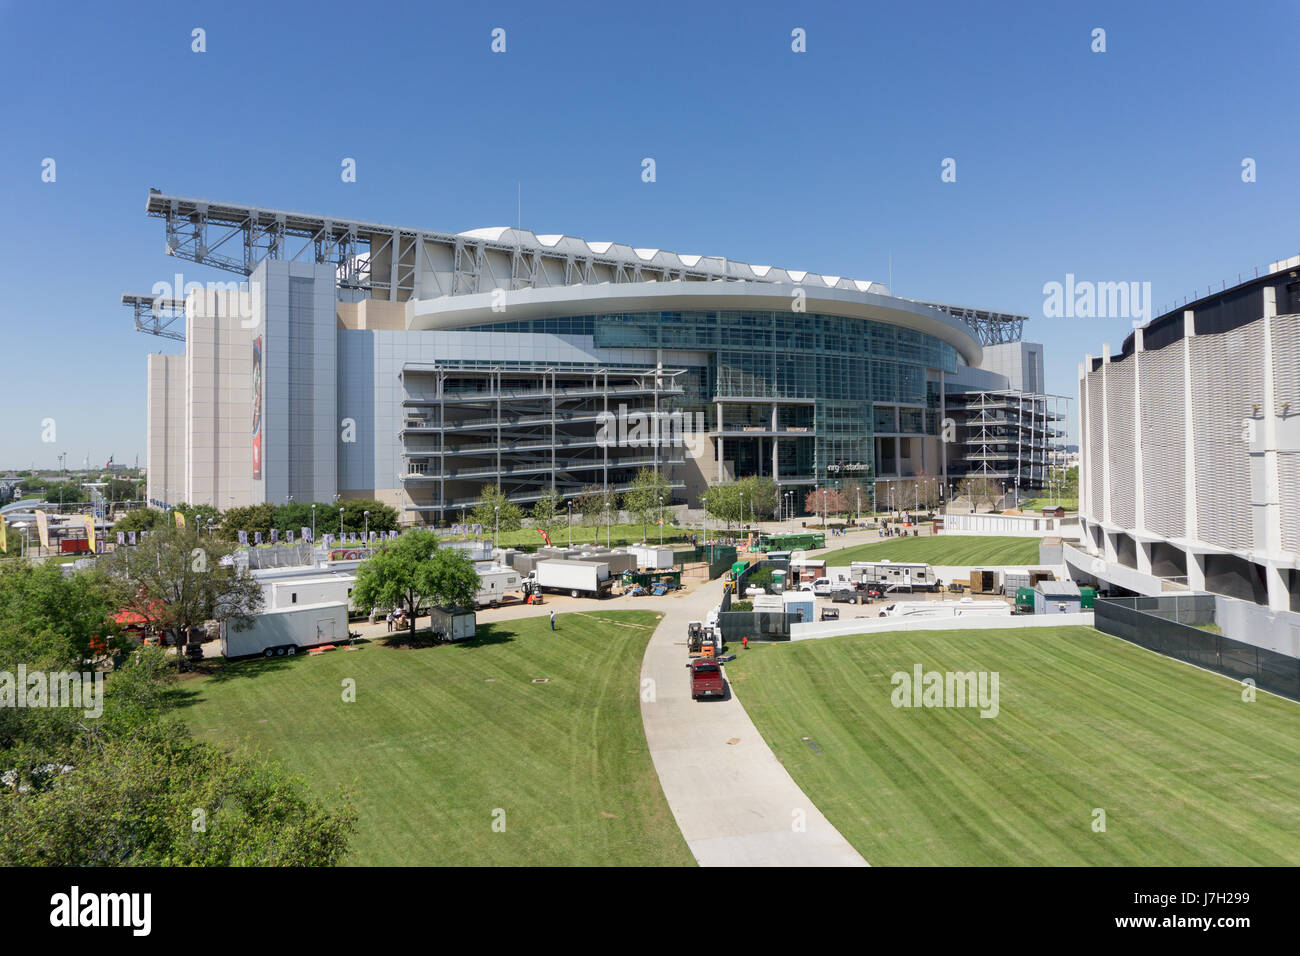 NRG stadium from above Stock Photo